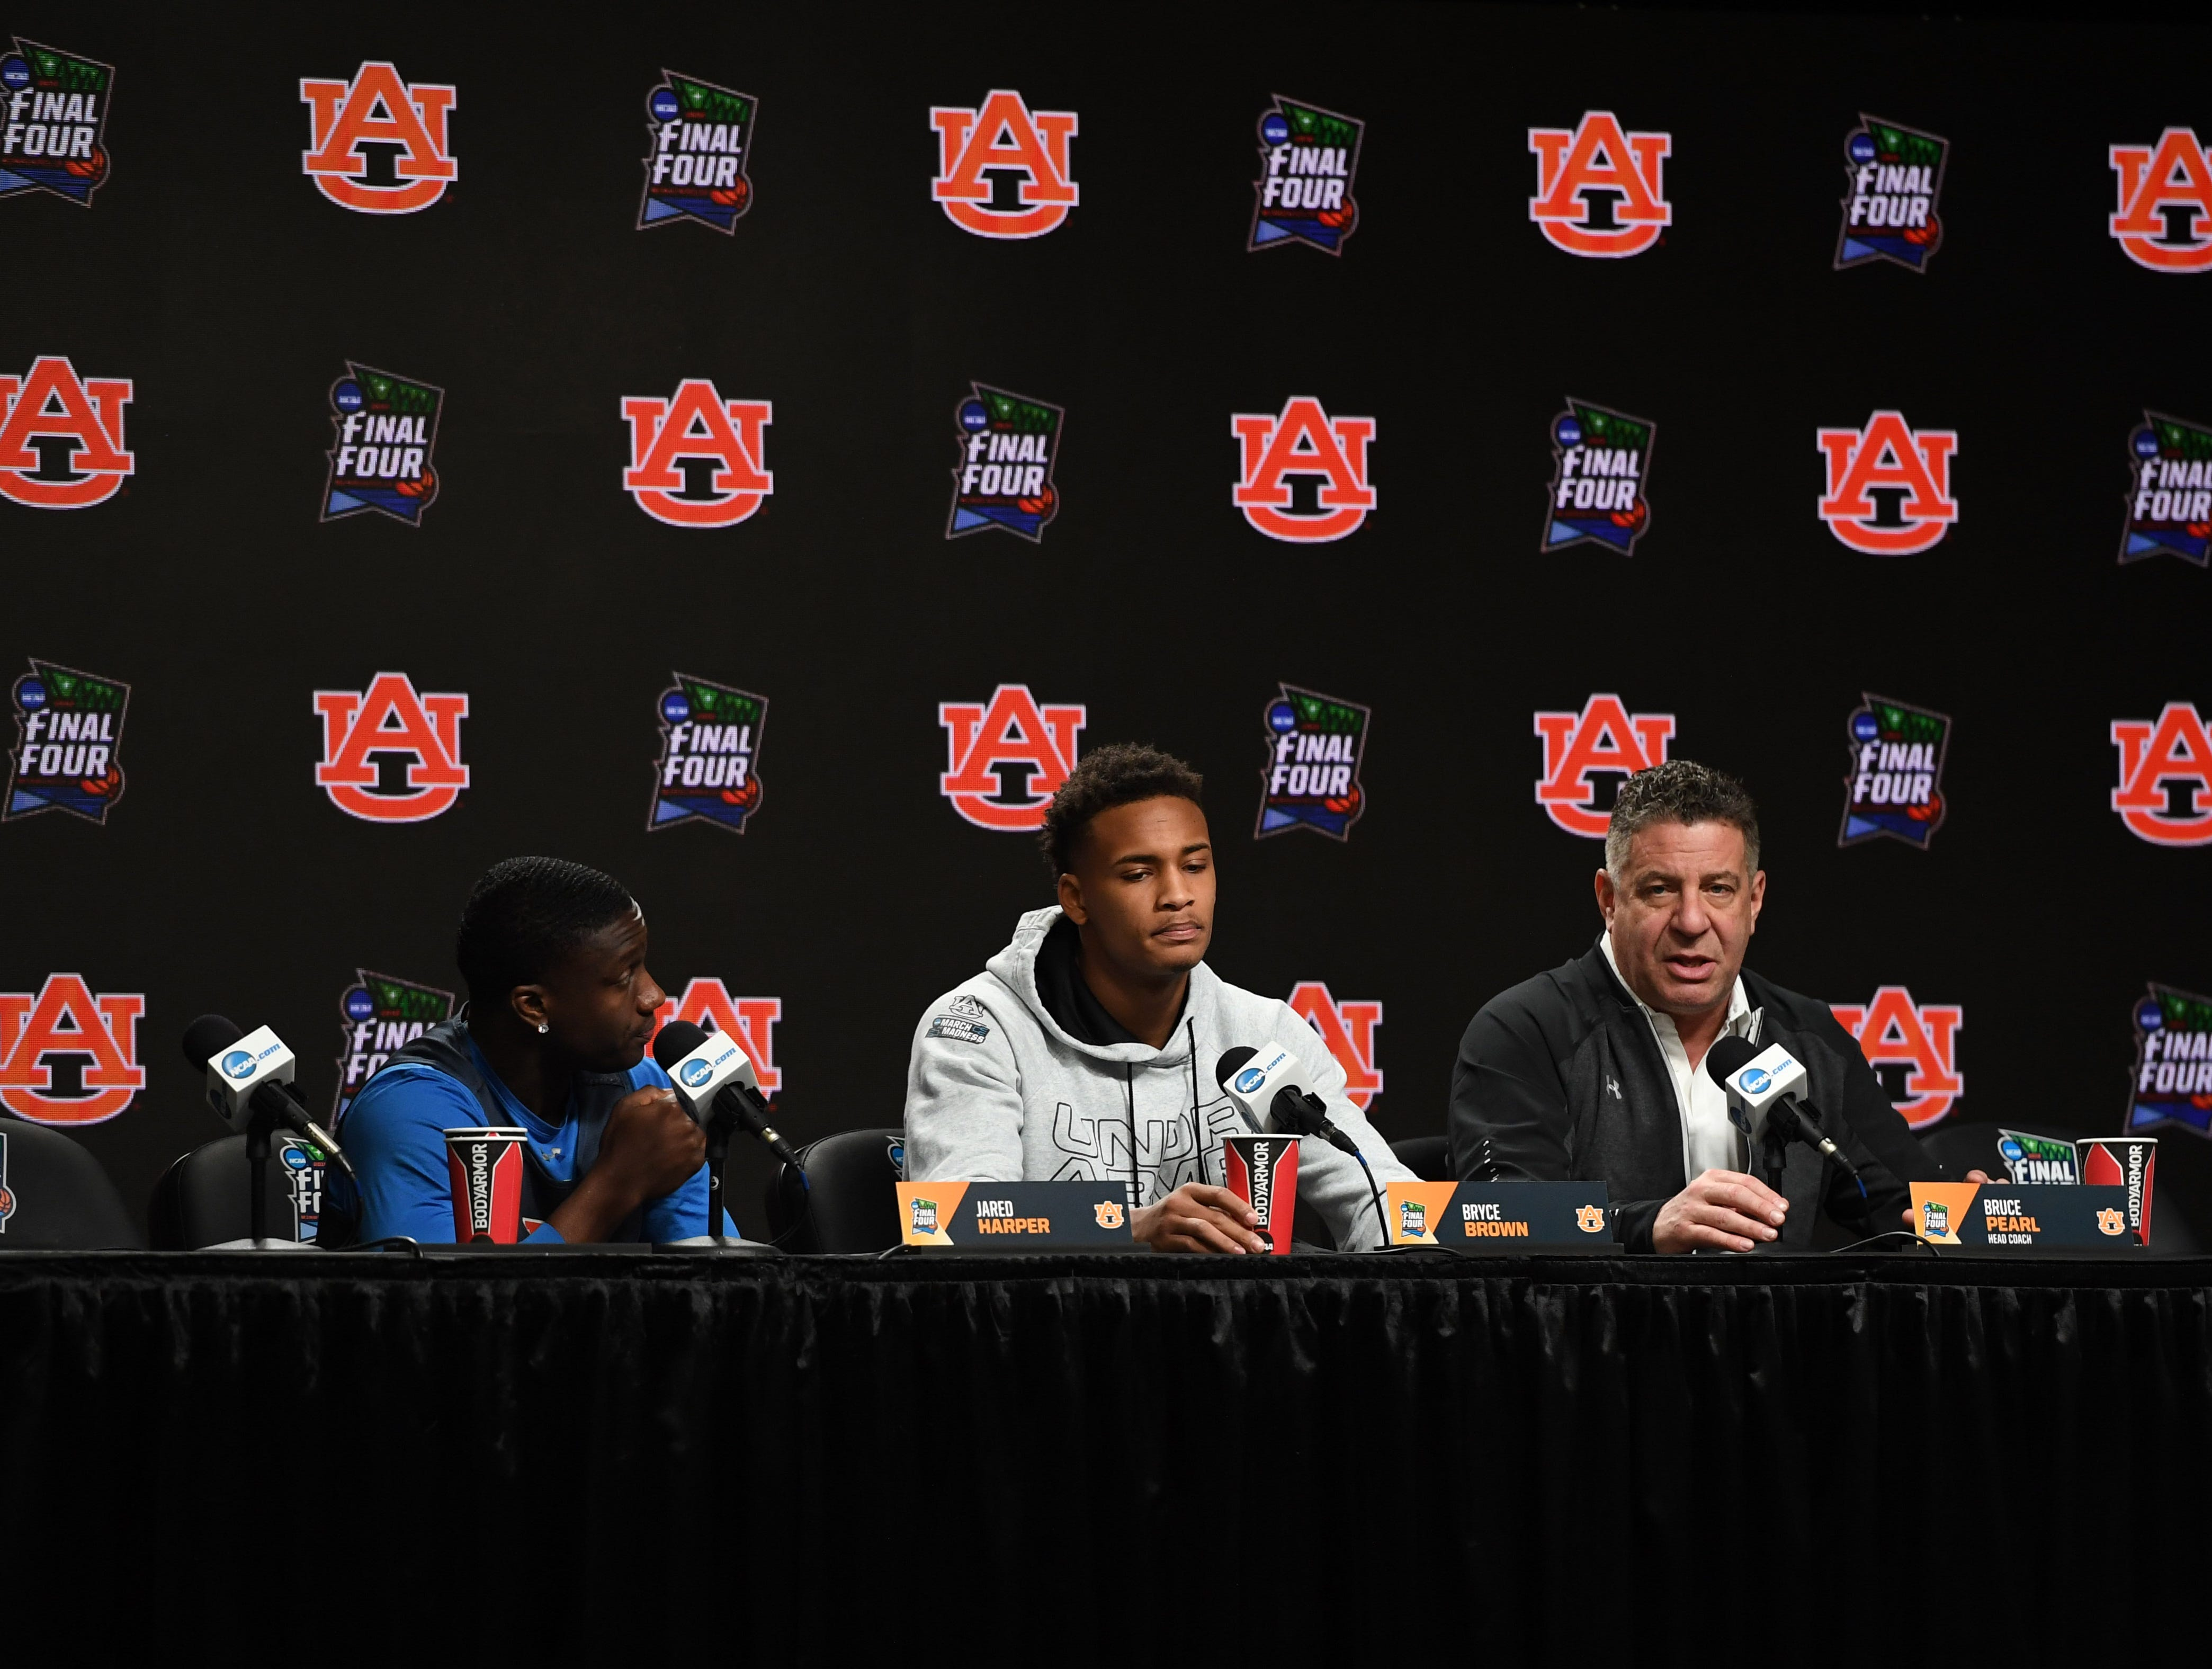 Apr 5, 2019; Minneapolis, MN, USA; Auburn Tigers guard Jared Harper (1) guard Bryce Brown (2) head coach Bruce Pearl during a press conference before practice for the 2019 men's Final Four at US Bank Stadium. Mandatory Credit: Shanna Lockwood-USA TODAY Sports